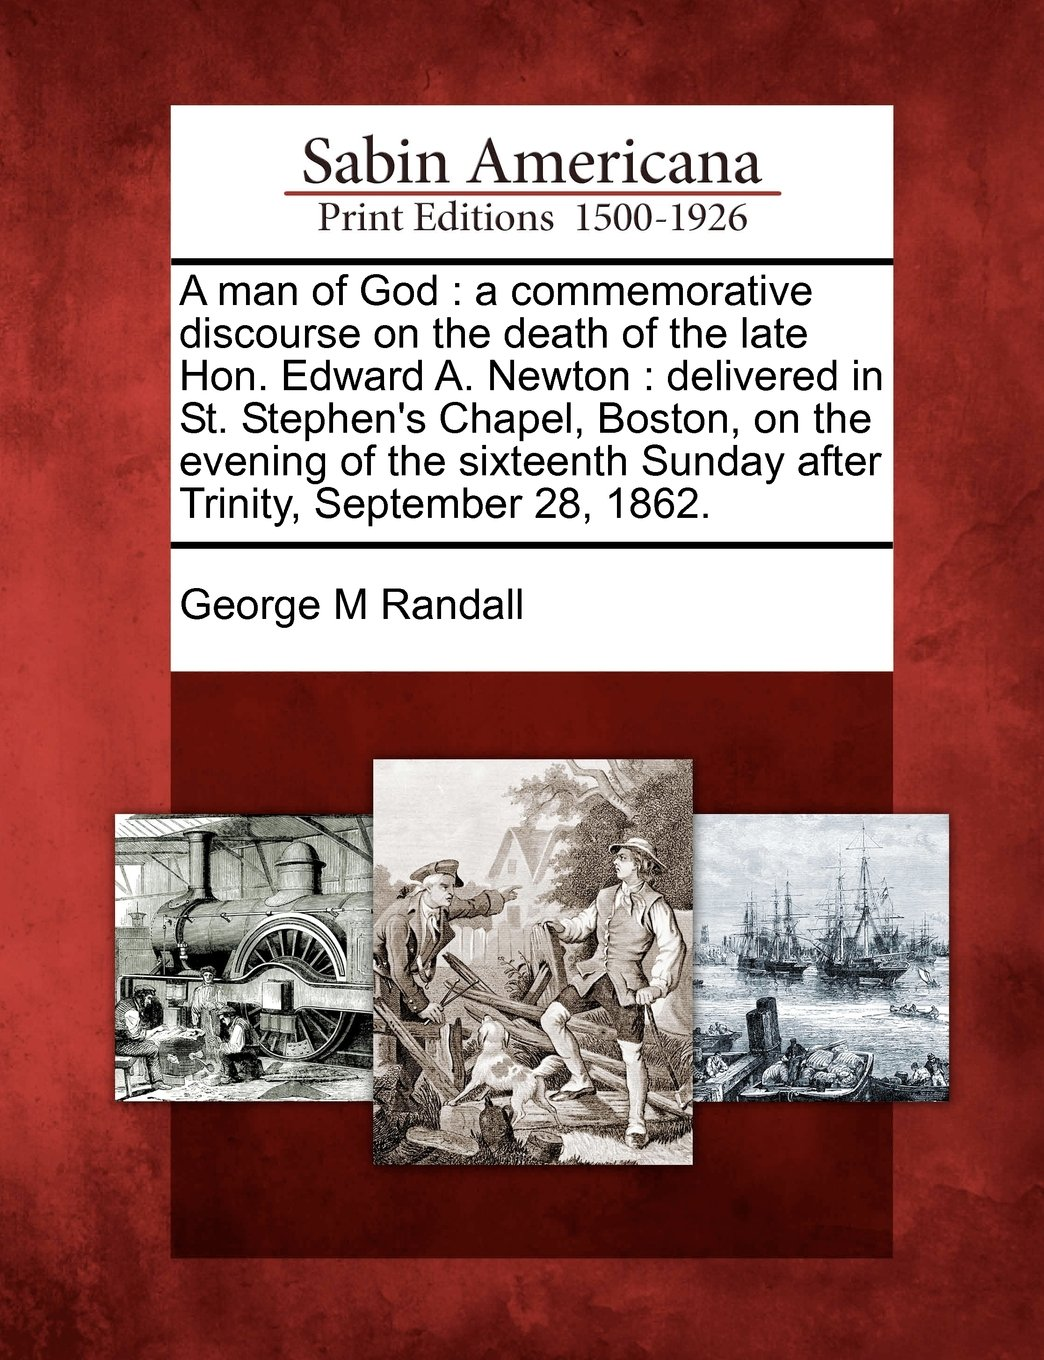 Download A man of God: a commemorative discourse on the death of the late Hon. Edward A. Newton : delivered in St. Stephen's Chapel, Boston, on the evening of ... Sunday after Trinity, September 28, 1862. PDF